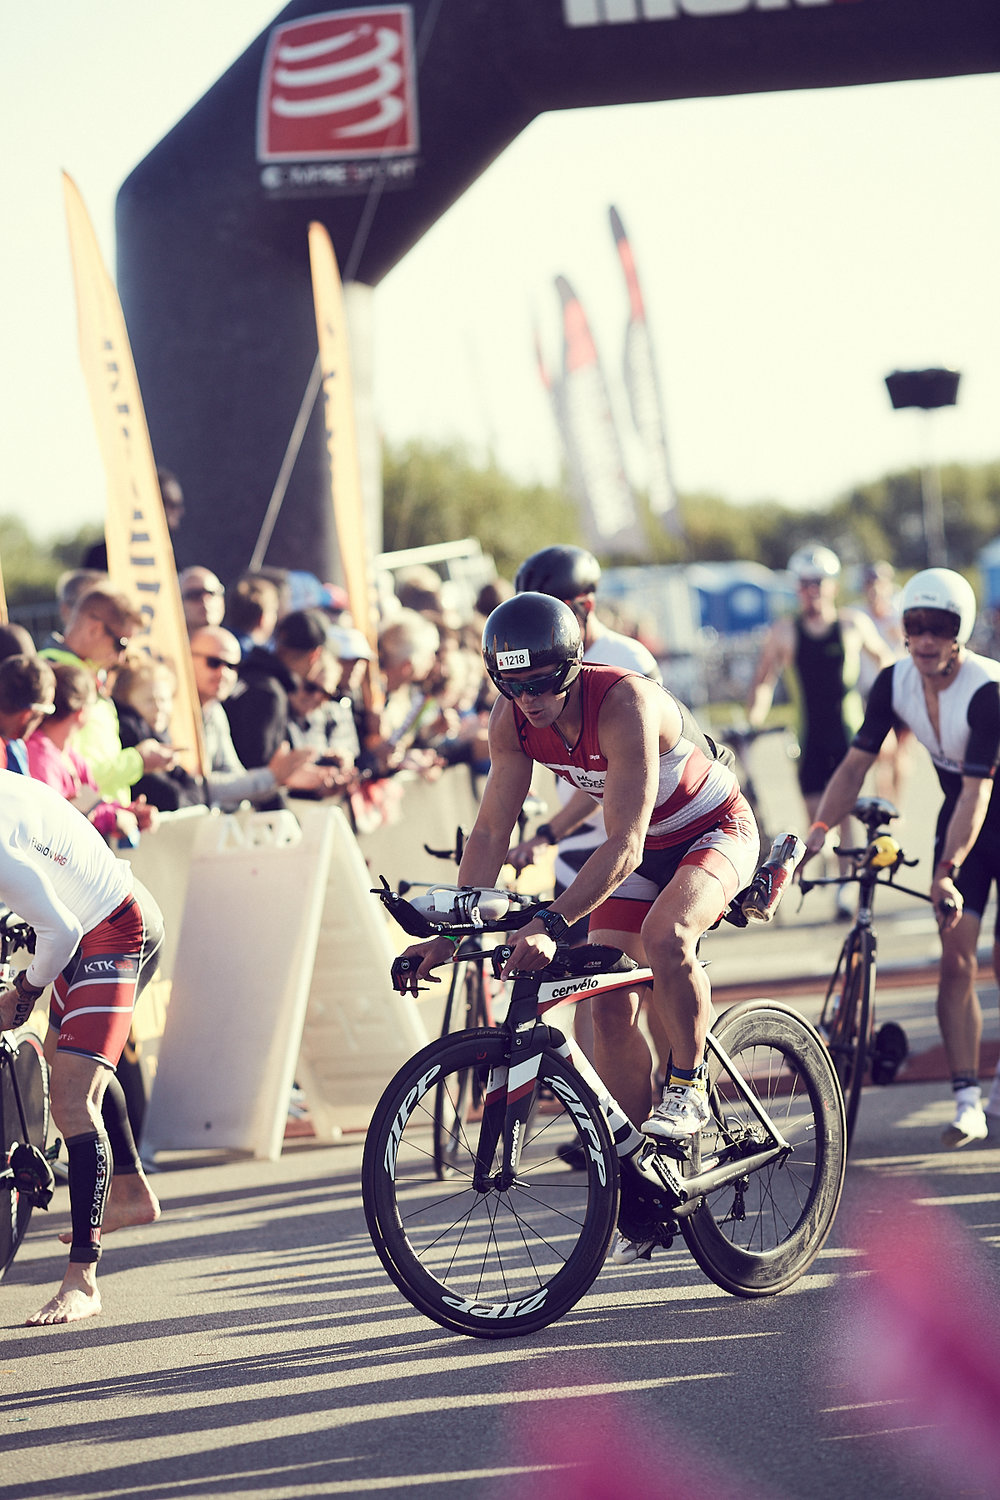 Ironman_409_Aug 20 2017, Anders Brinckmeyer.jpg